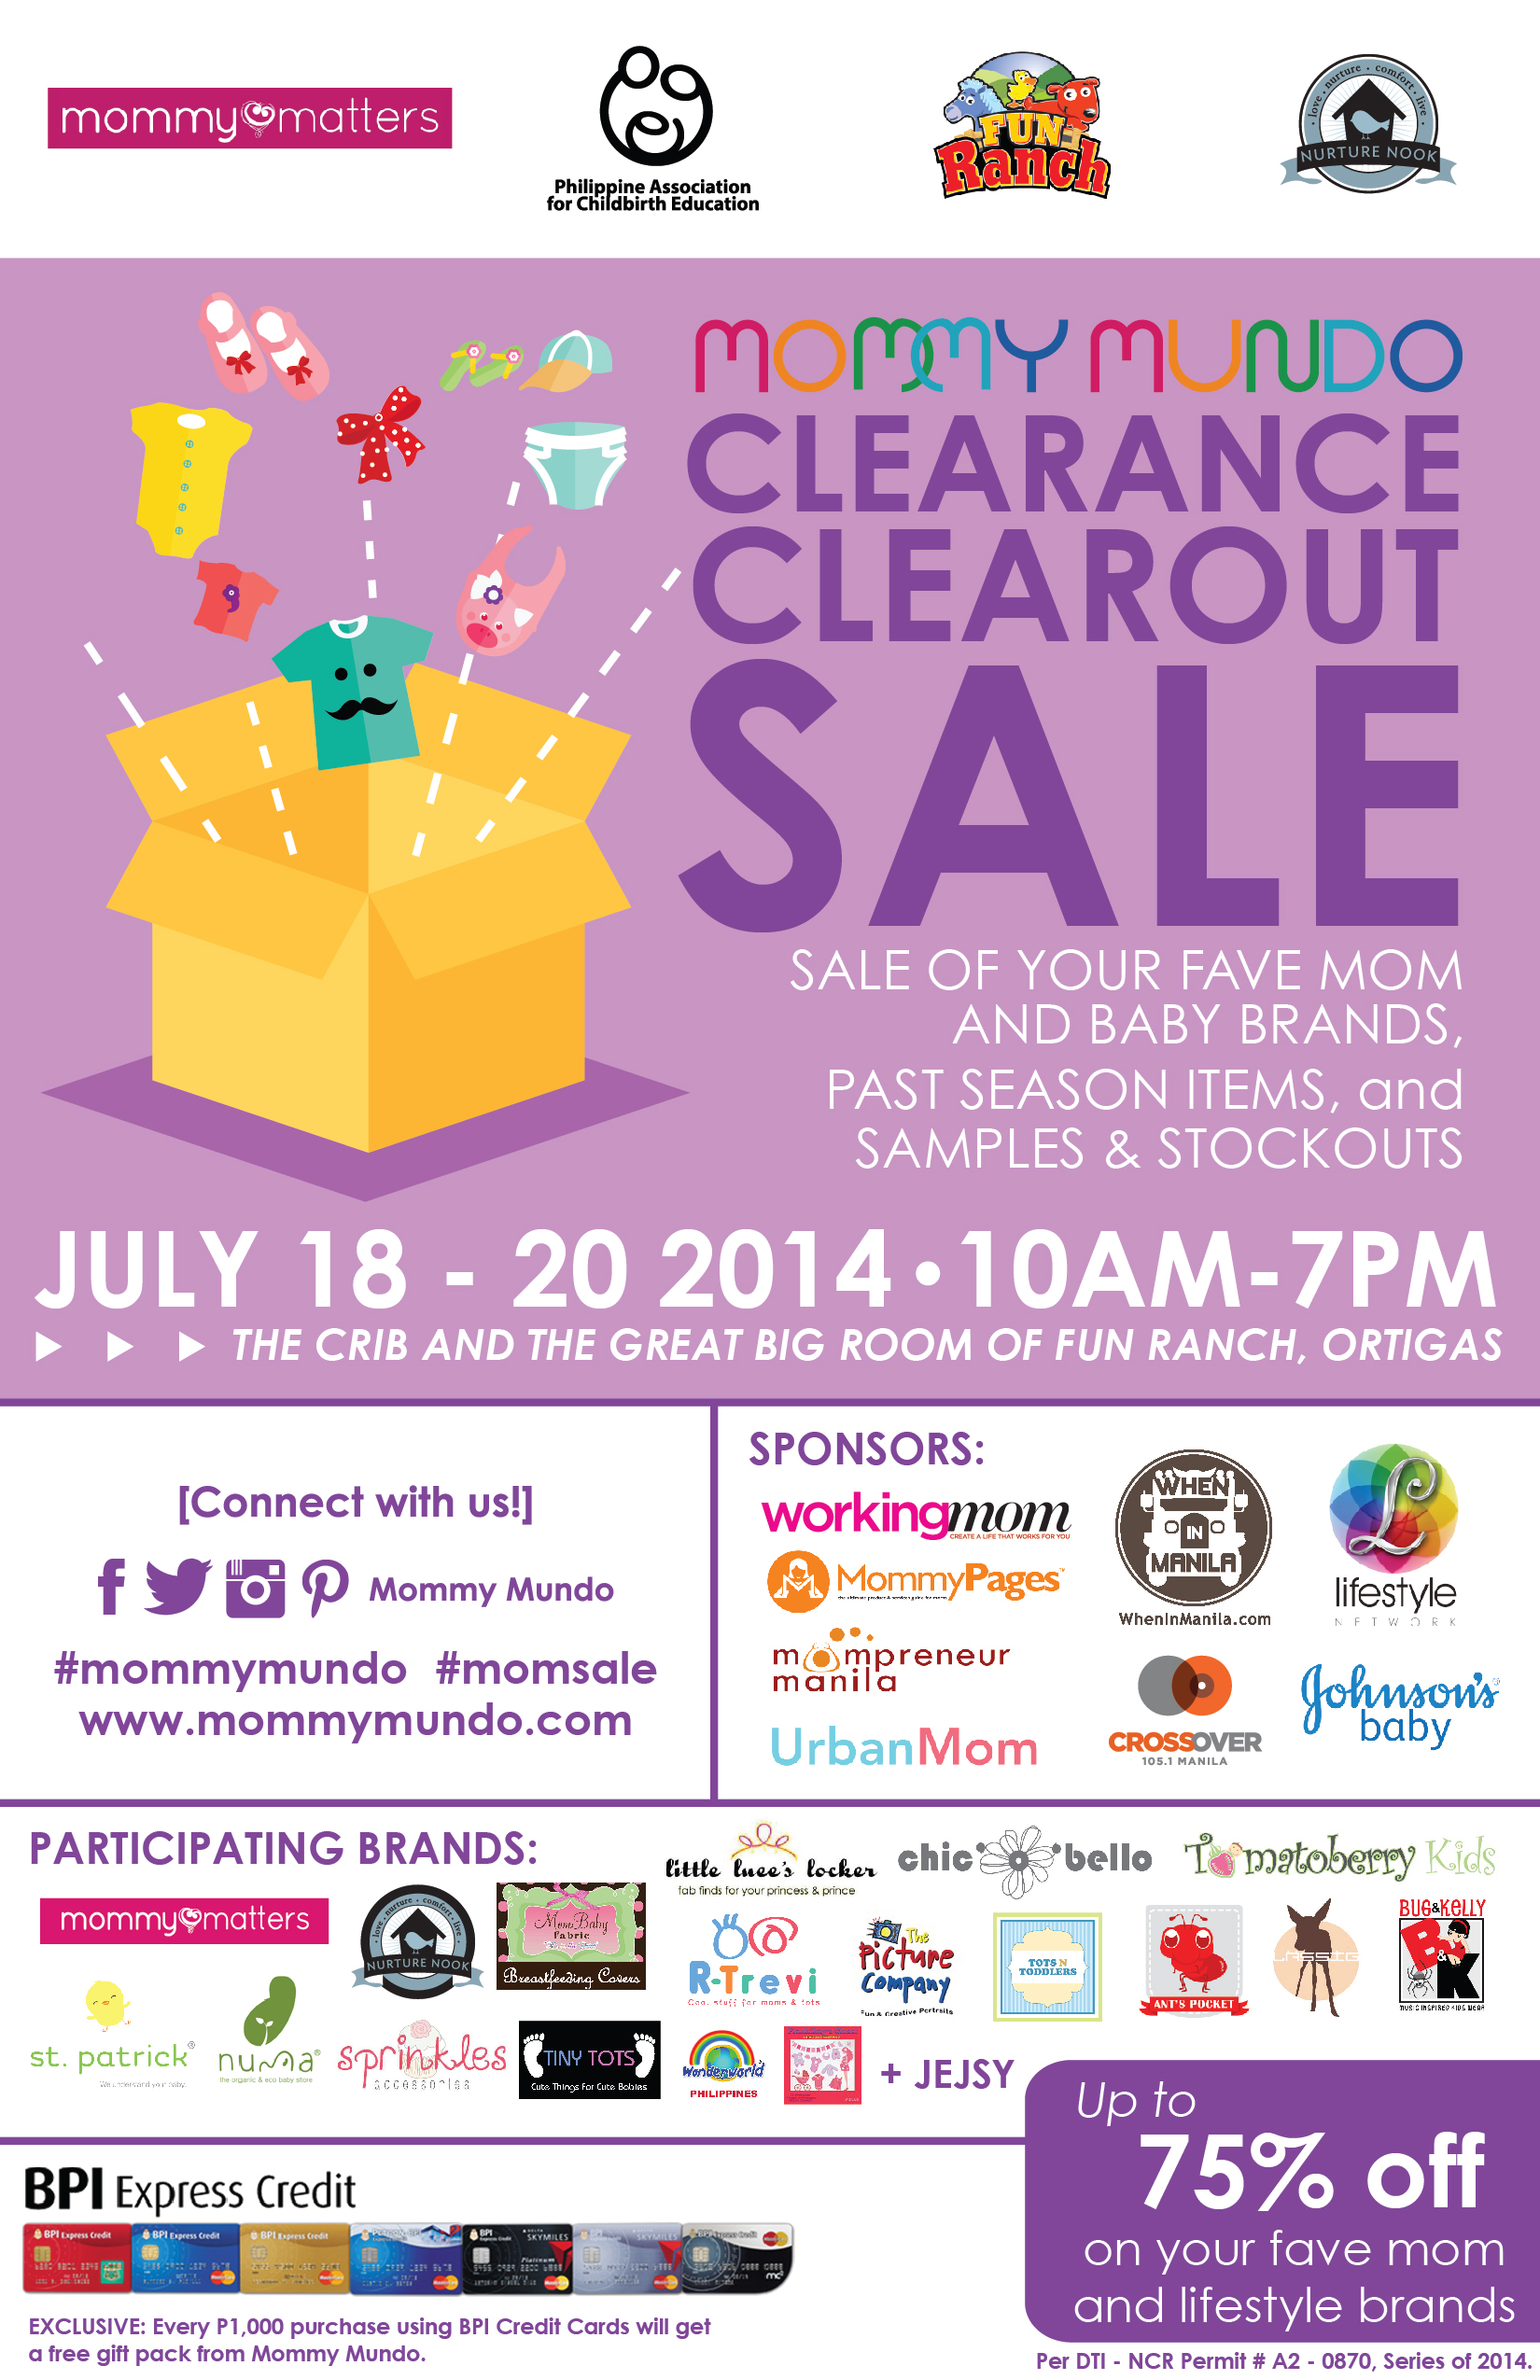 Mommy Mundo Clearance Clearout Sale